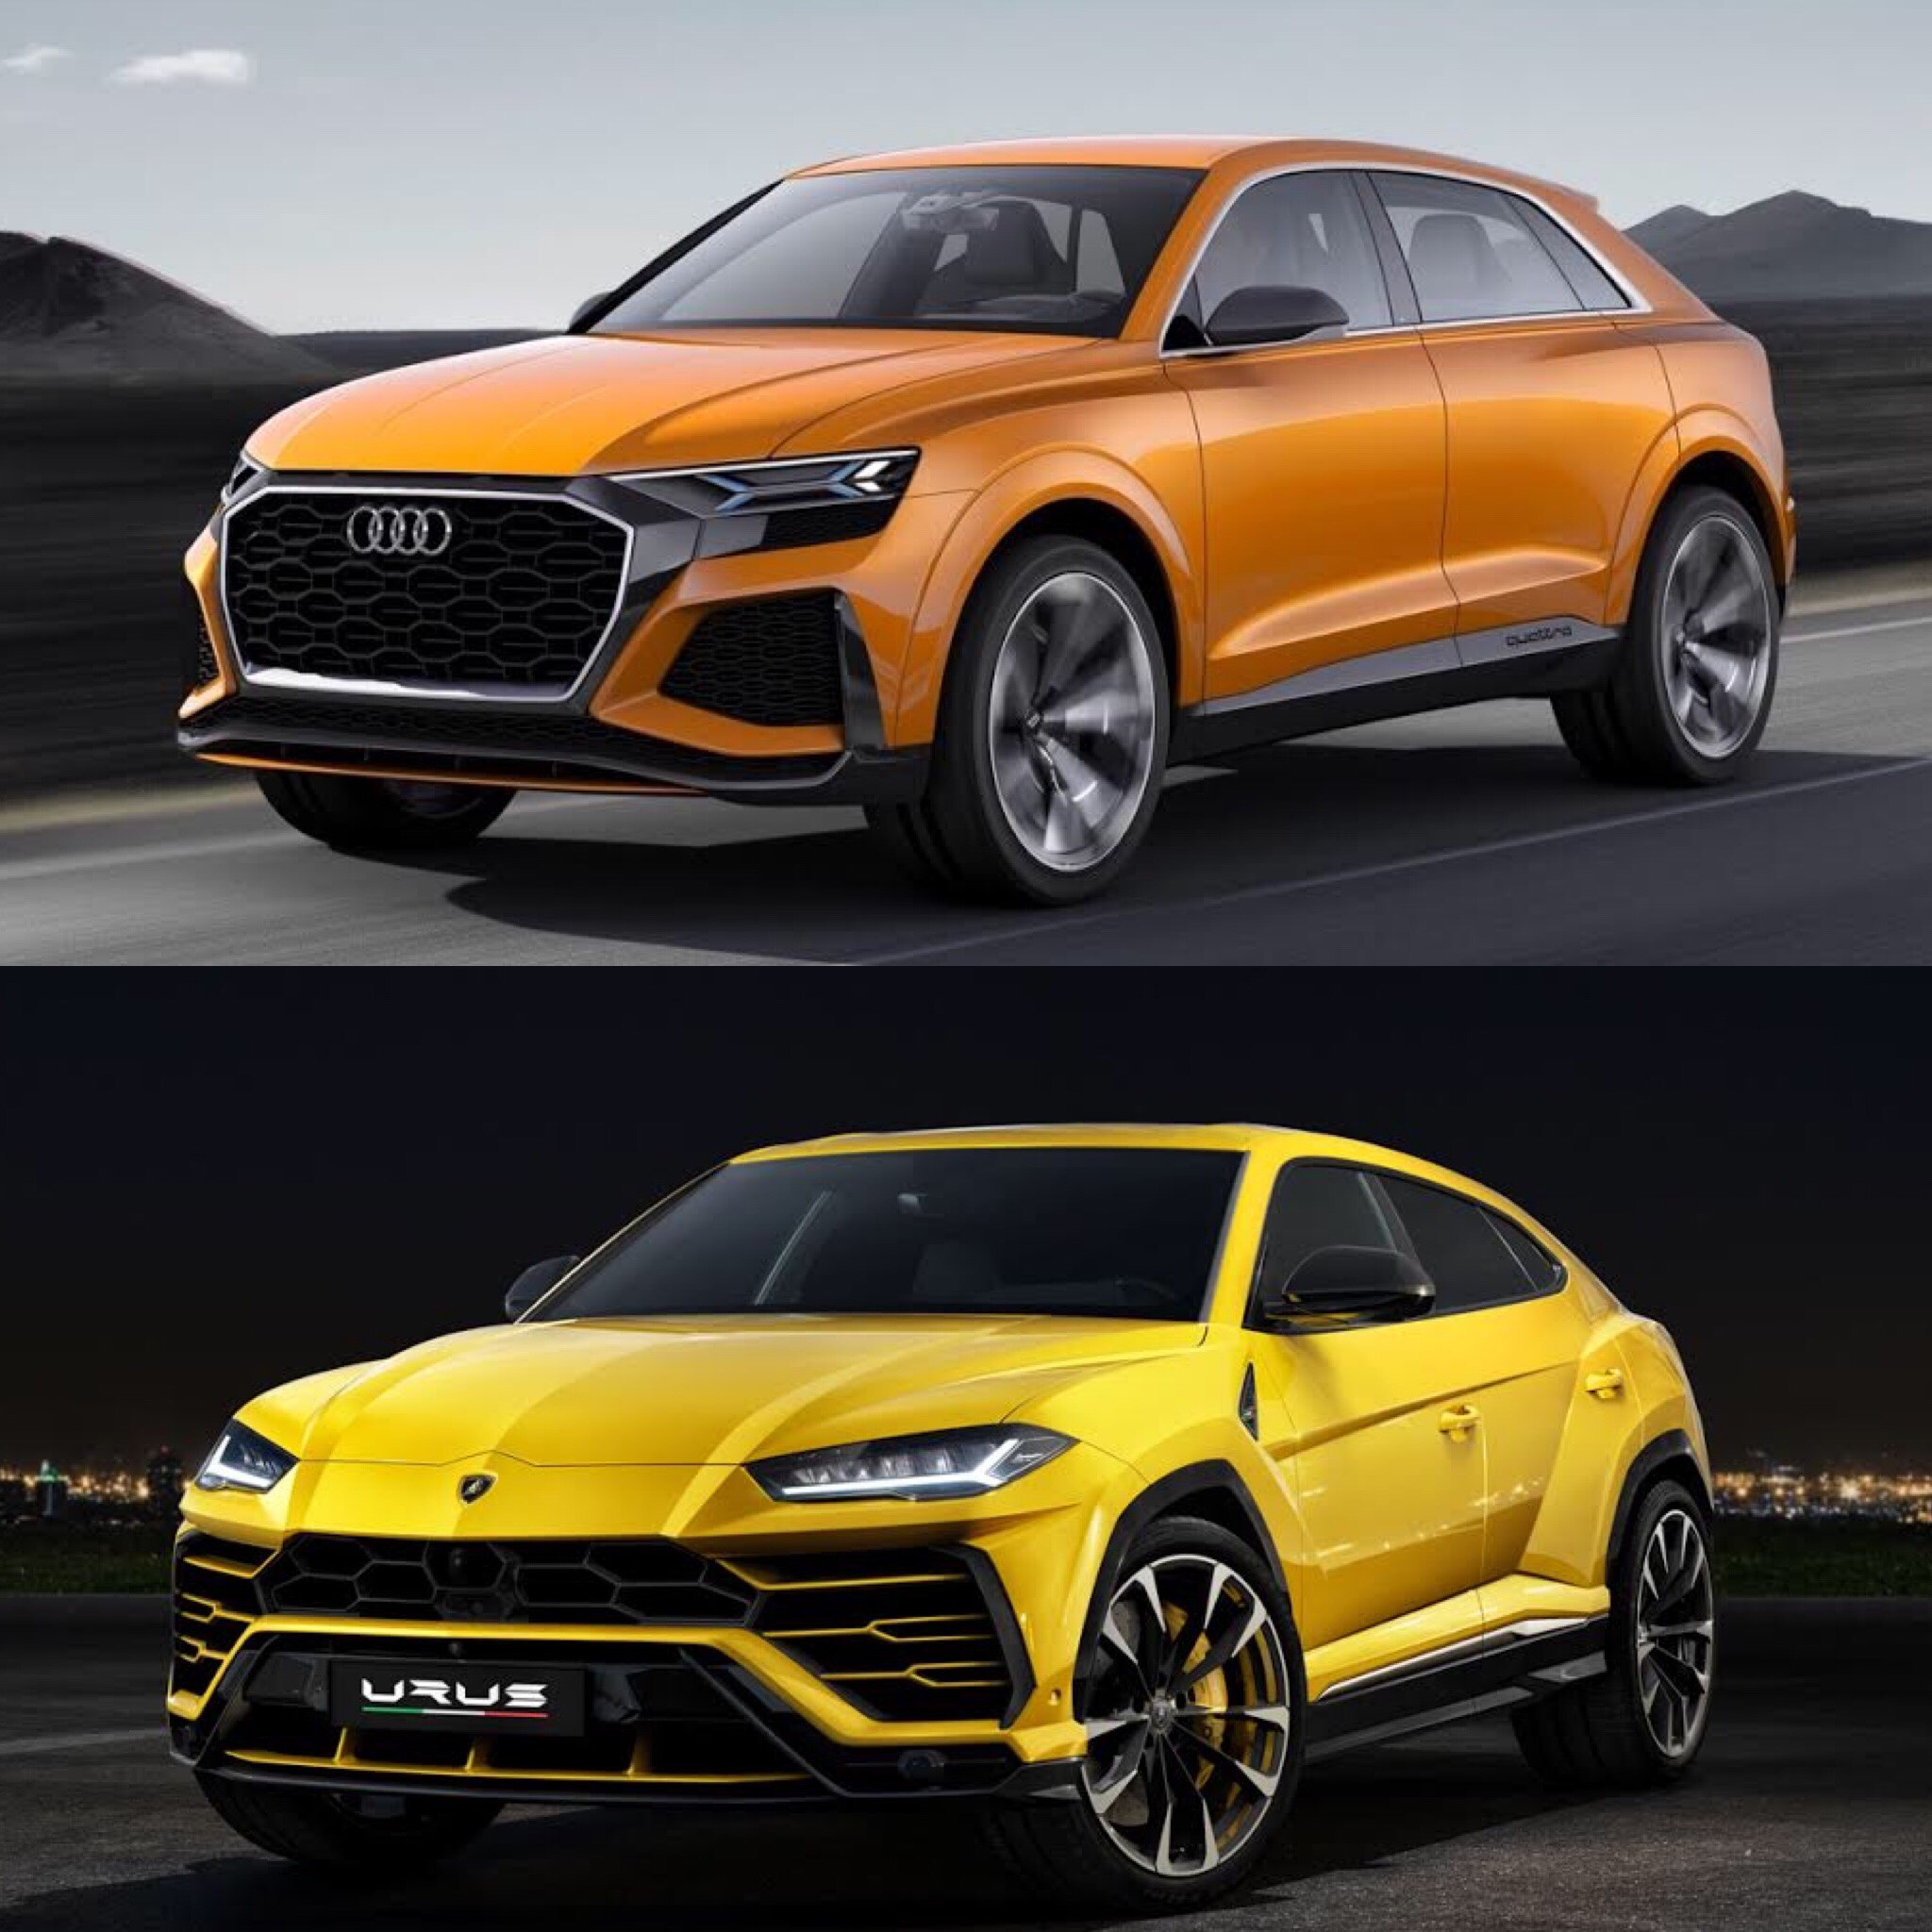 Photo Comparison: Audi Q8 Concept vs Lamborghini Urus